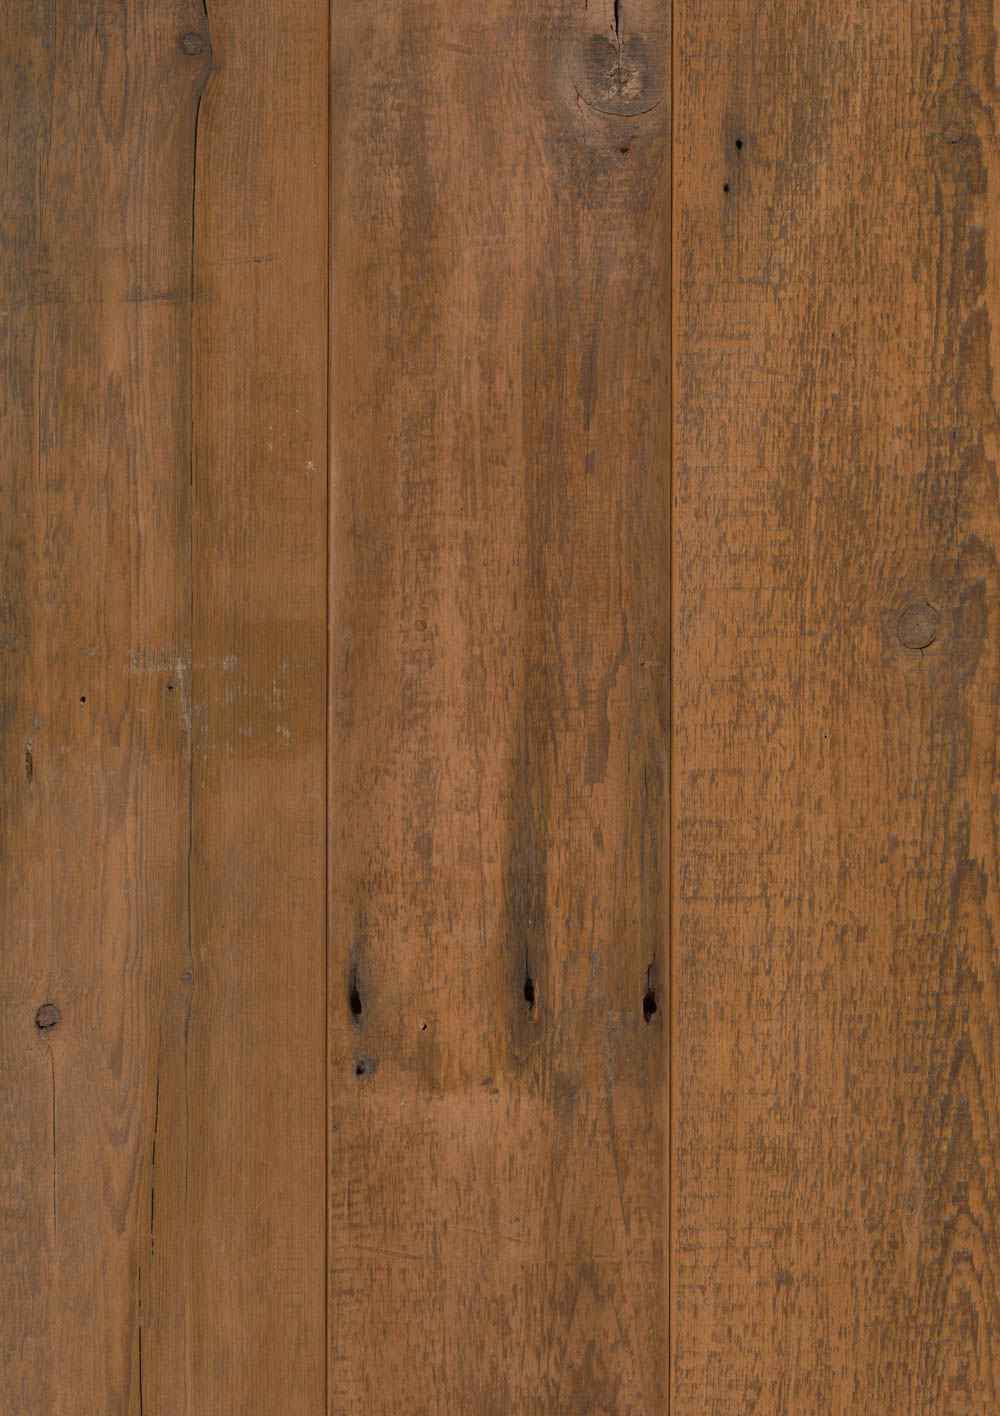 Reclaimed Mixed Softwoods (Pine) Original, Skiped Bare Poly Prime 8